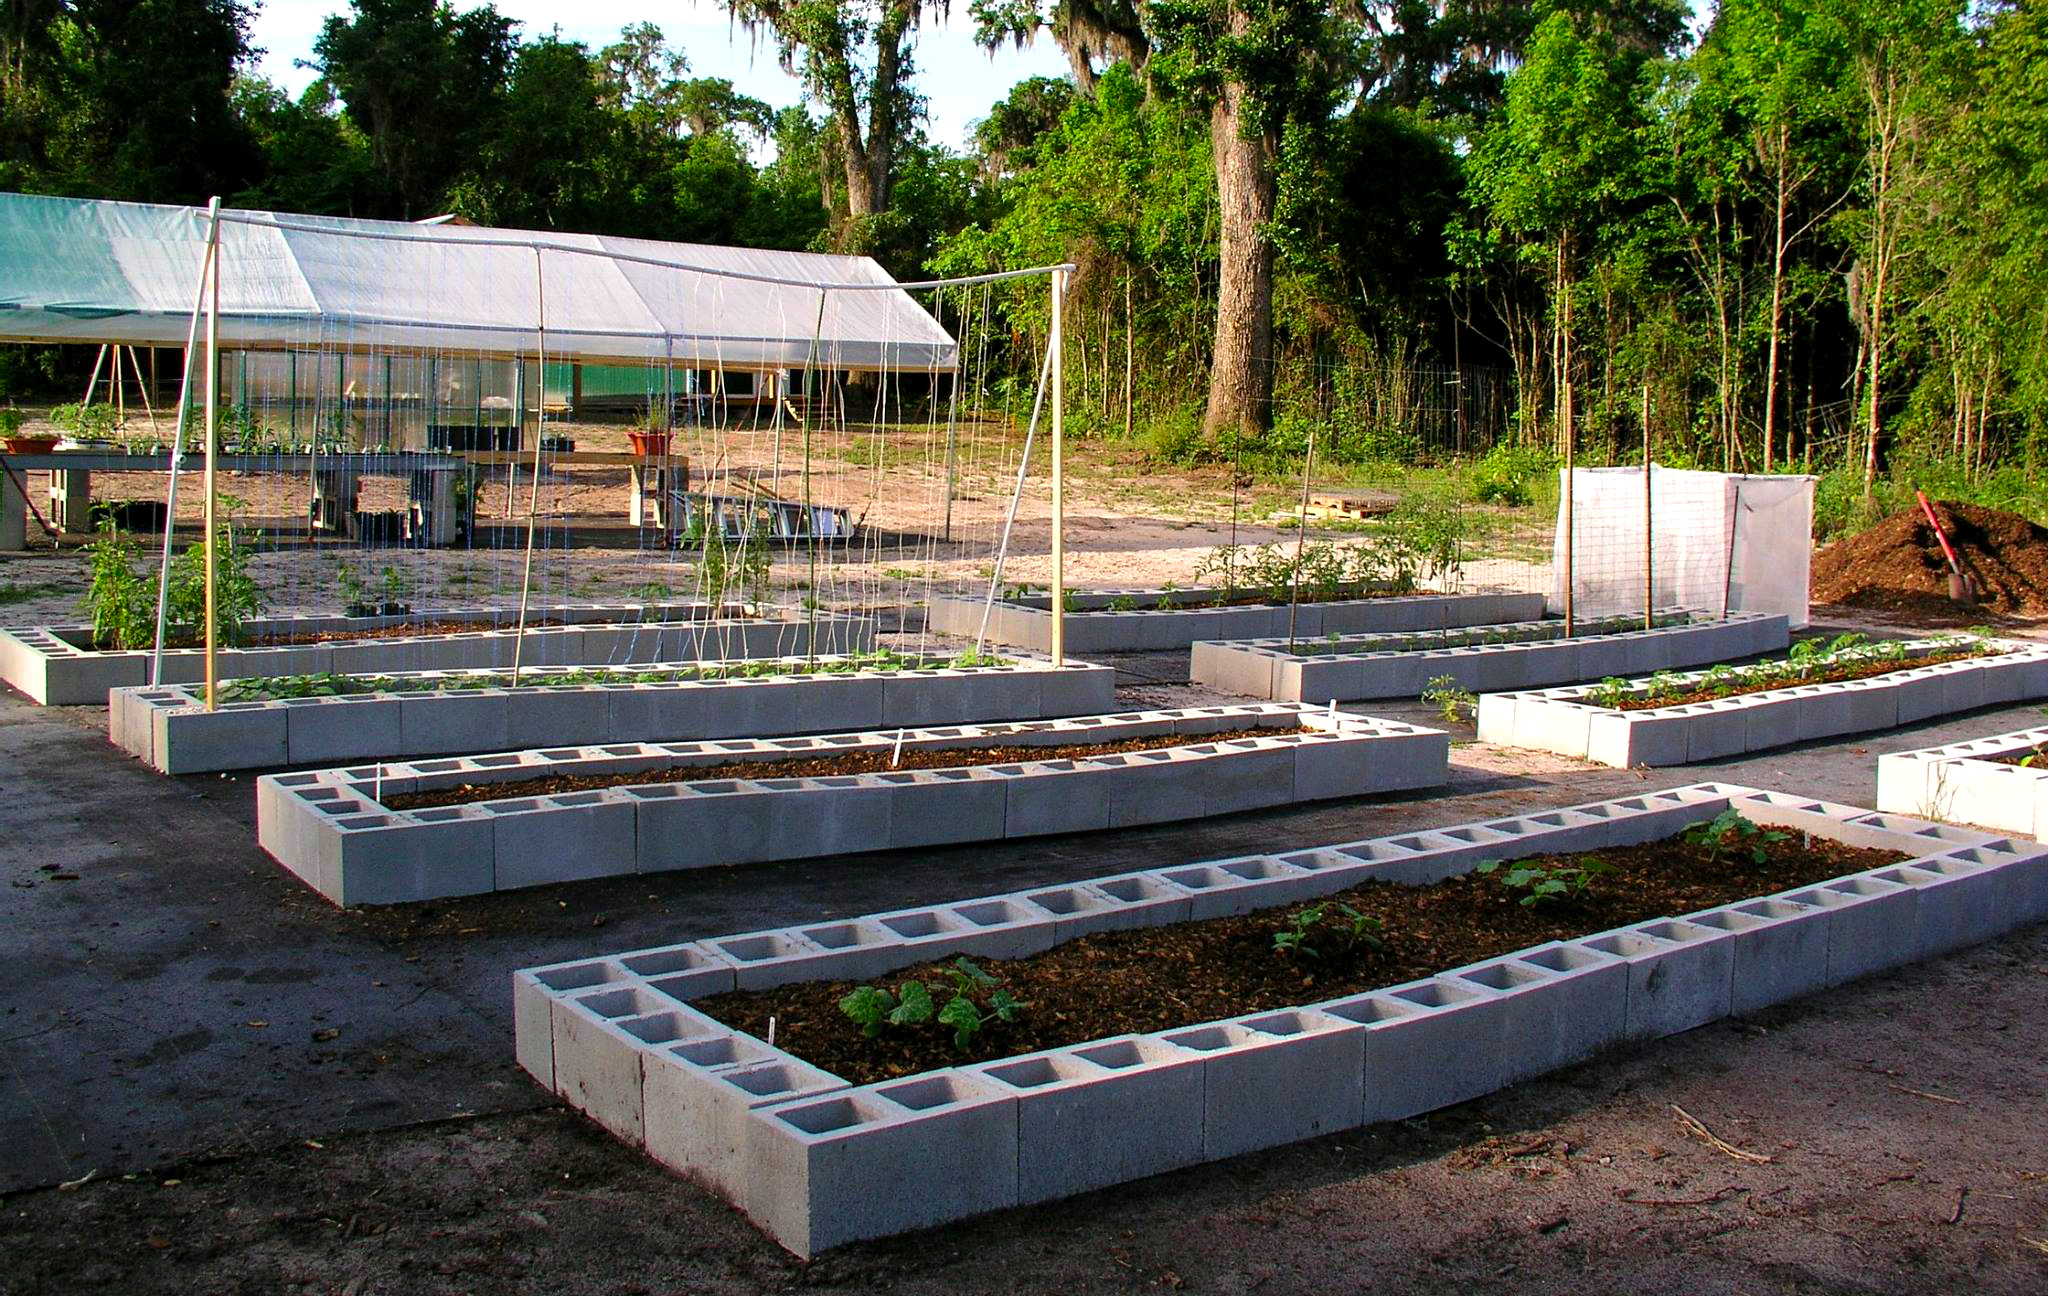 florida raised beds gardens growin crazy acres